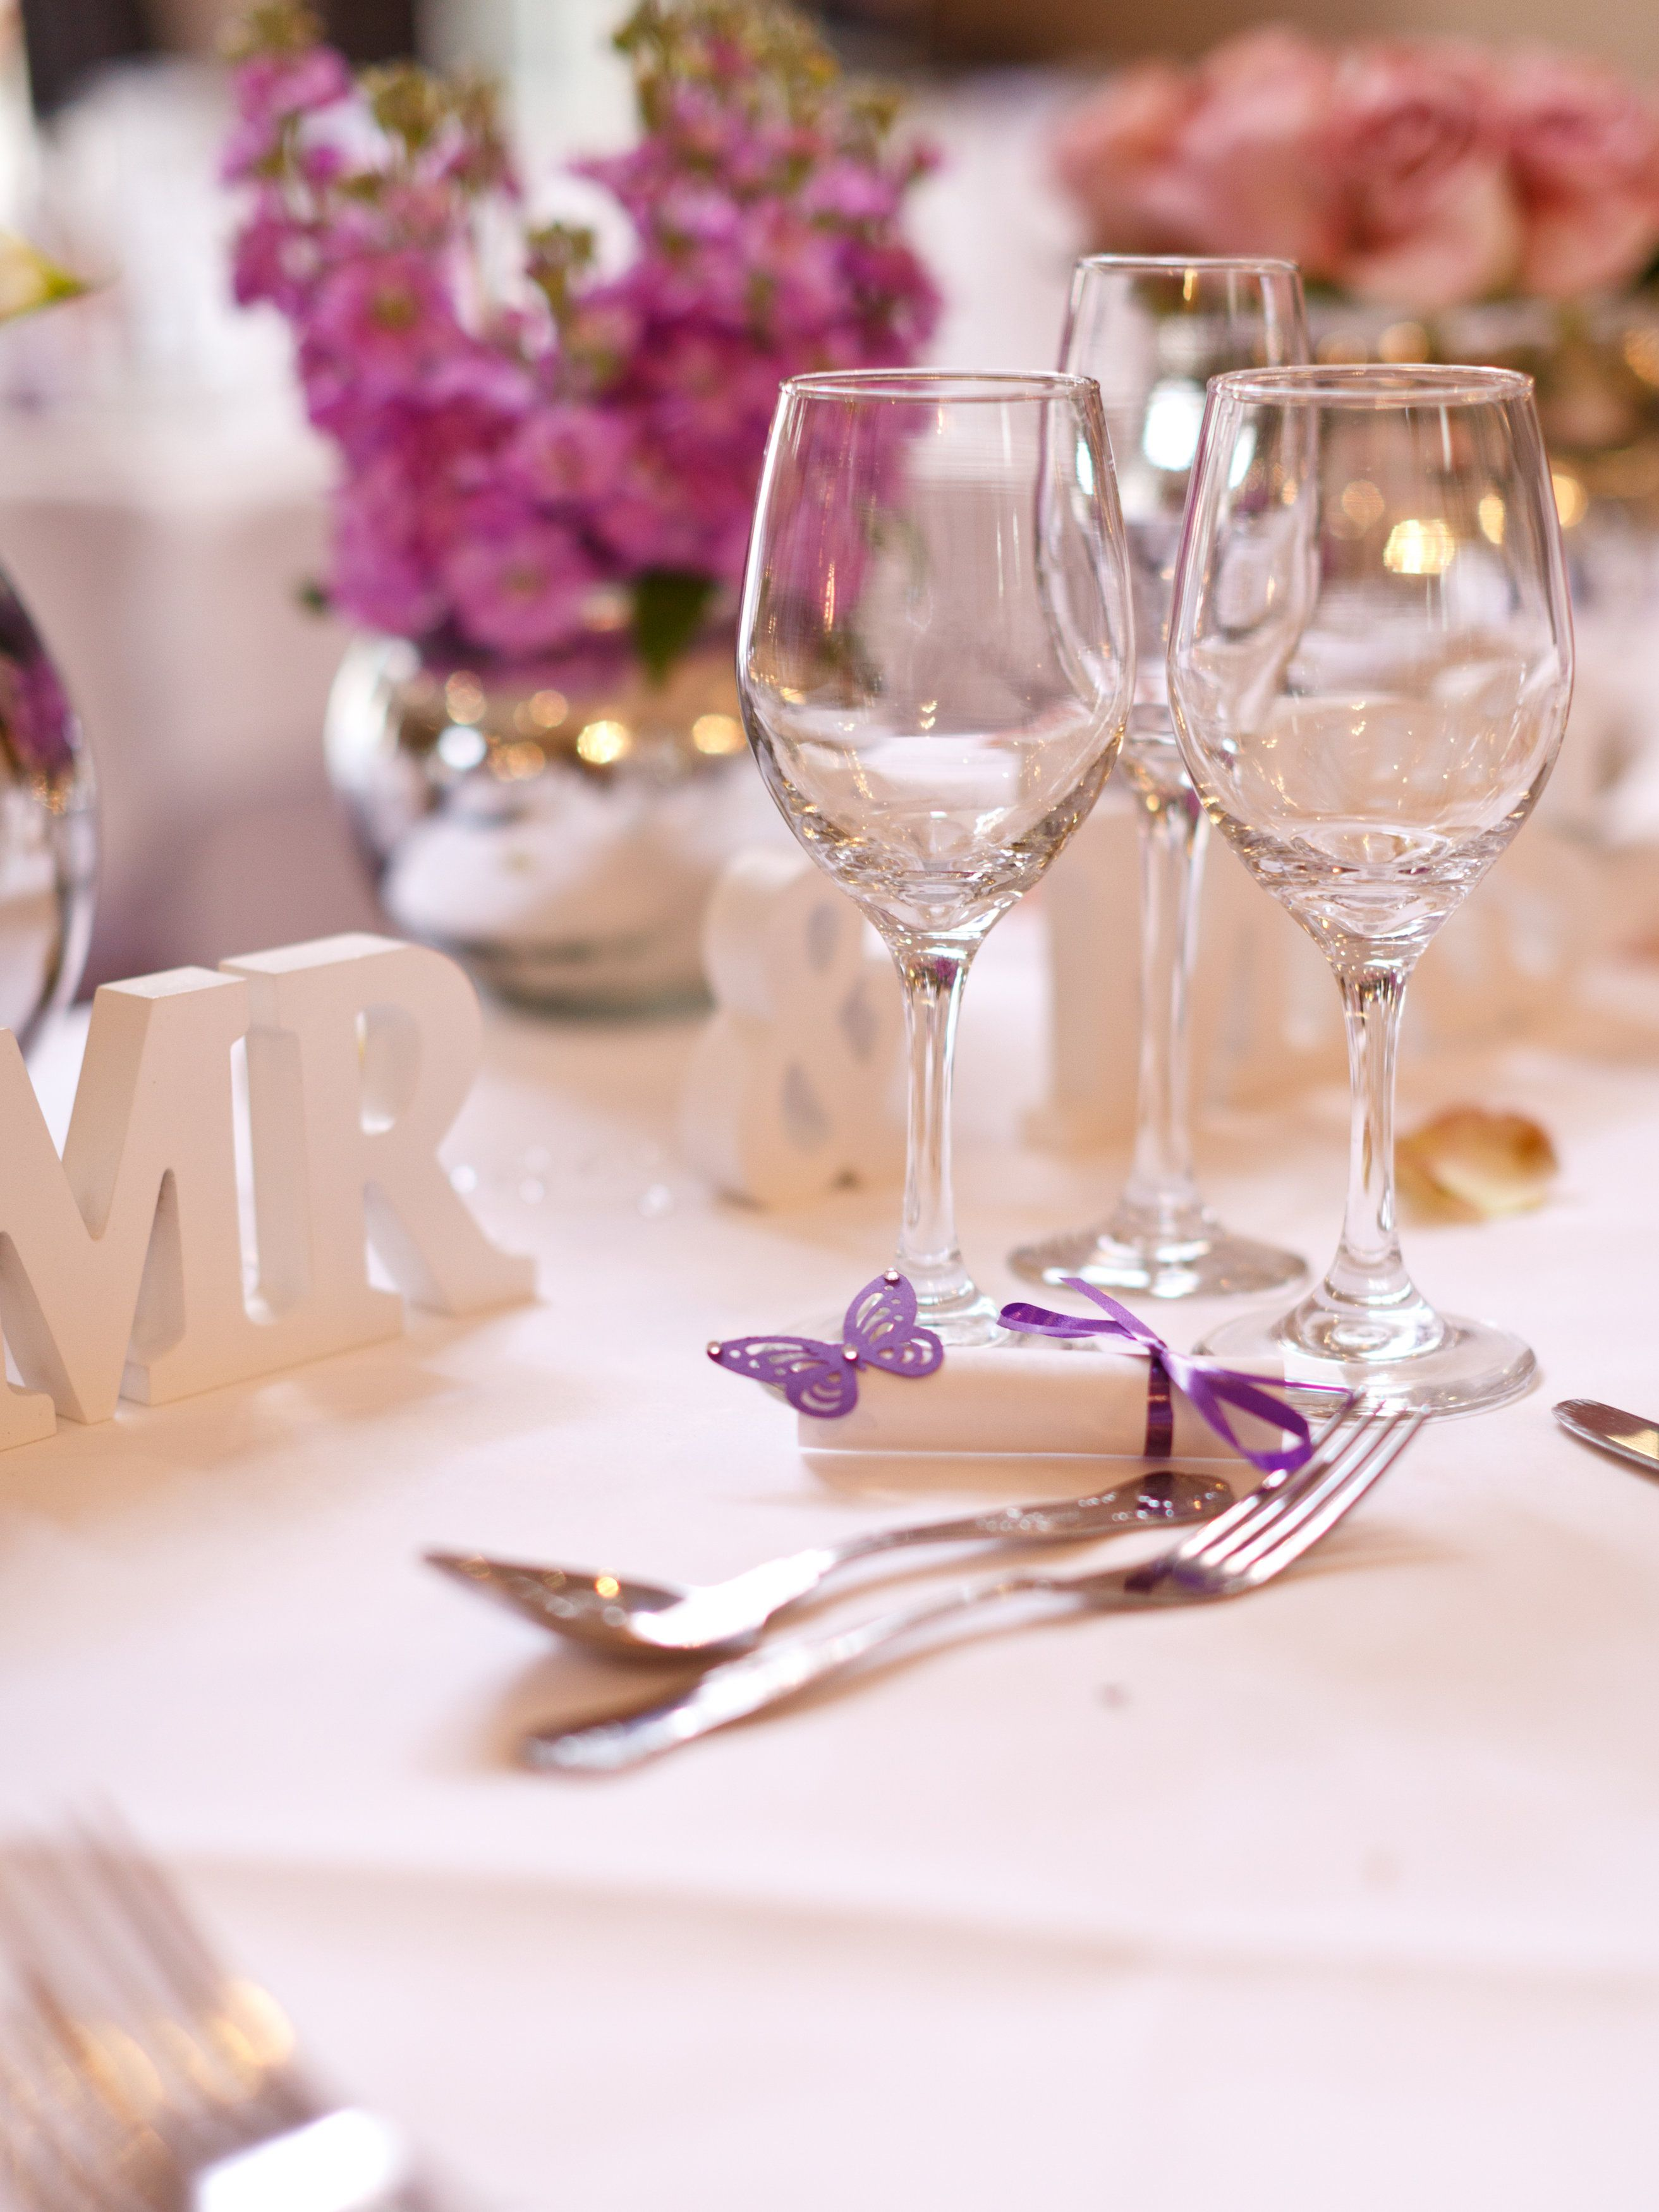 Lovely wedding venue decoration set for your dream wedding day at lovely wedding venue decoration set for your dream wedding day at chilston park in kent junglespirit Gallery